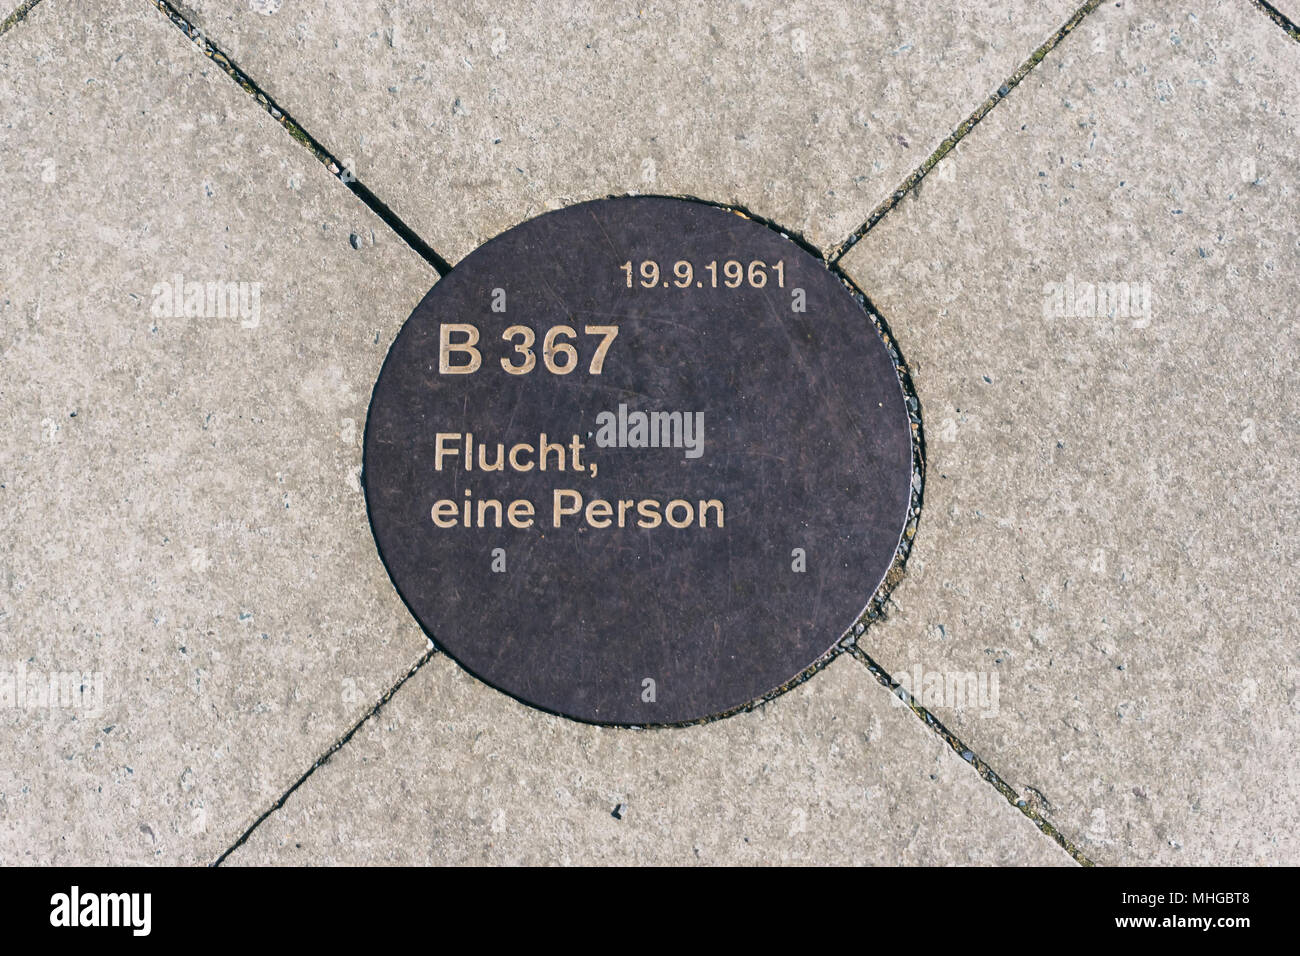 Commemorative plaque of Berlin Wall remembering an escape in 1961 - Stock Image